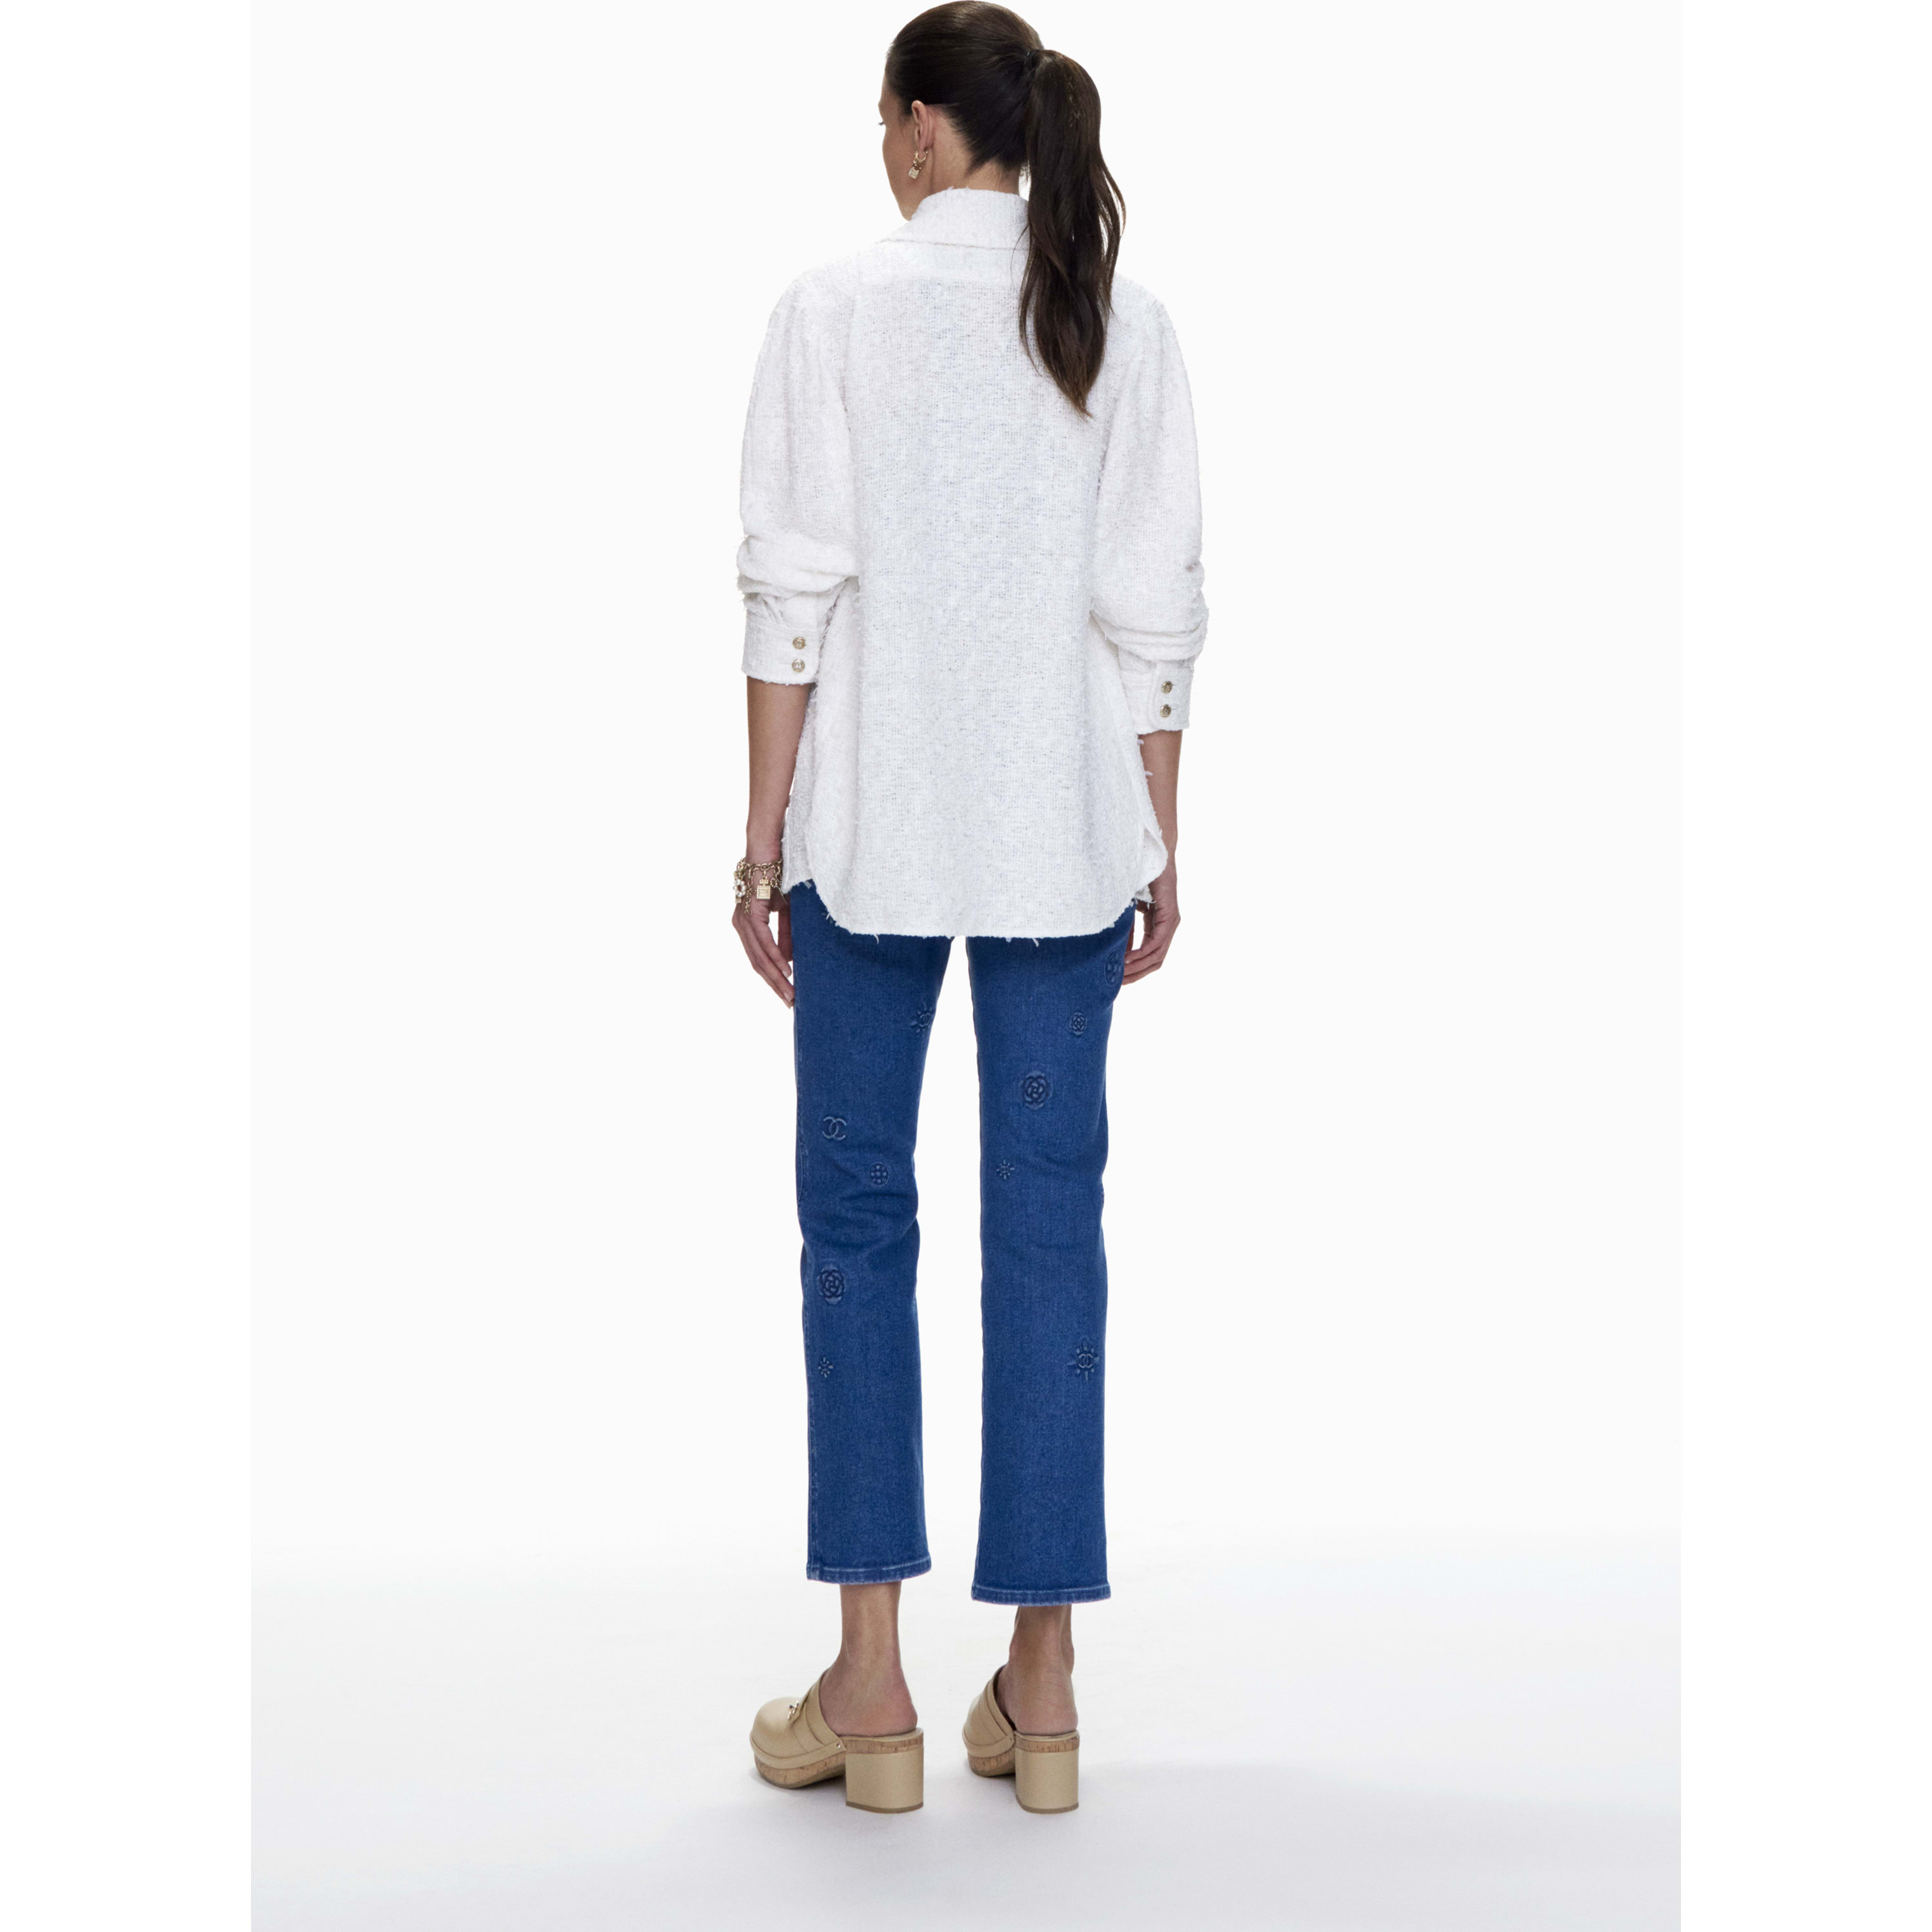 Jeans - Blue - Embroidered Washed Stretch Denim  - CHANEL - Other view - see standard sized version